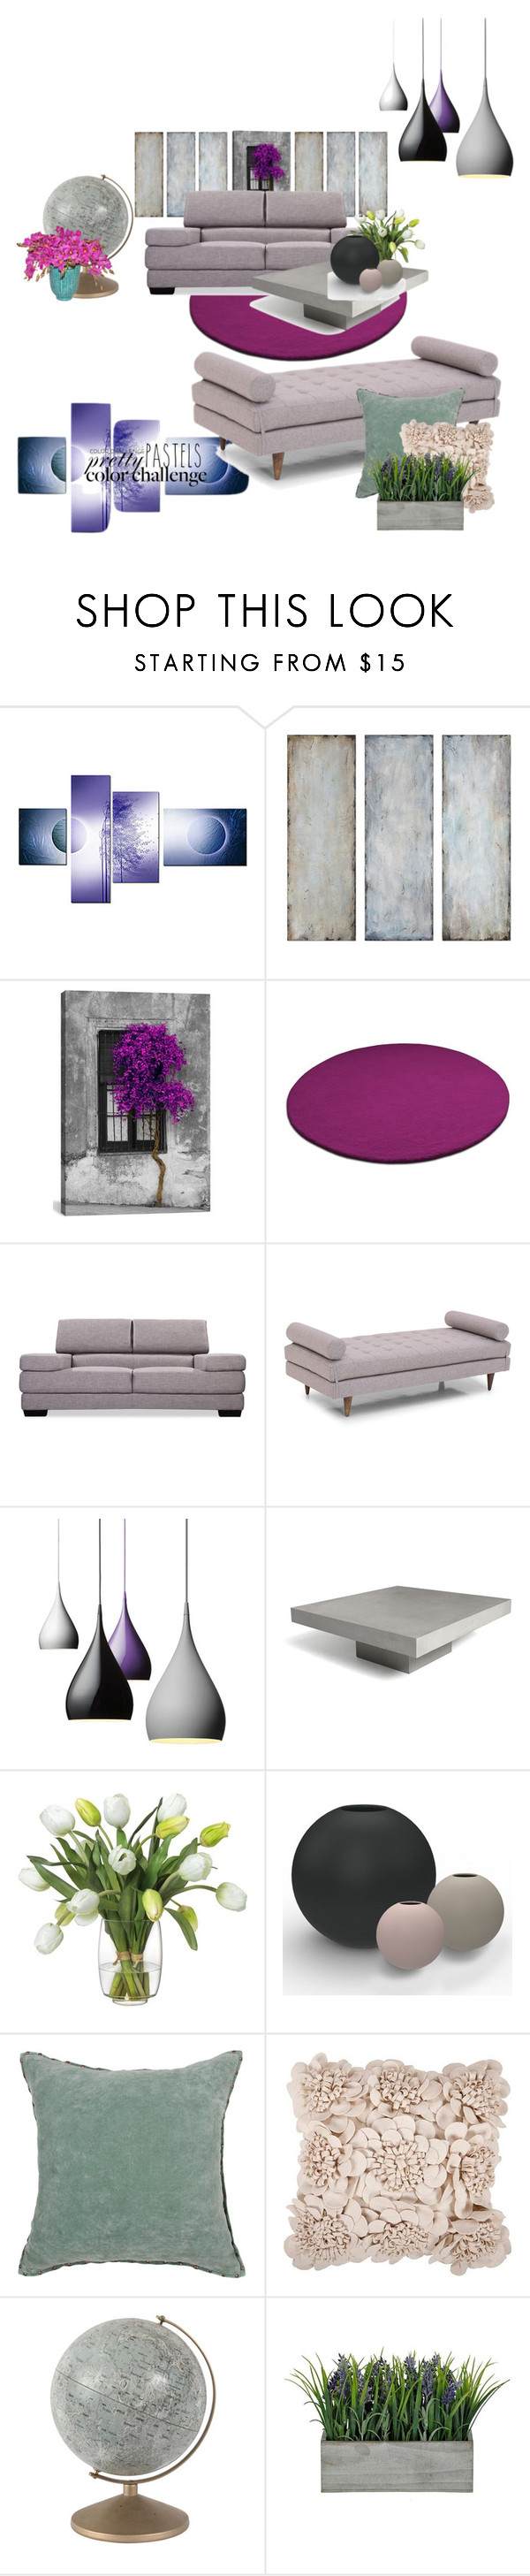 """Untitled #280"" by forkelly1 ❤ liked on Polyvore featuring interior, interiors, interior design, home, home decor, interior decorating, Uttermost, iCanvas, Joybird Furniture and Diane James"